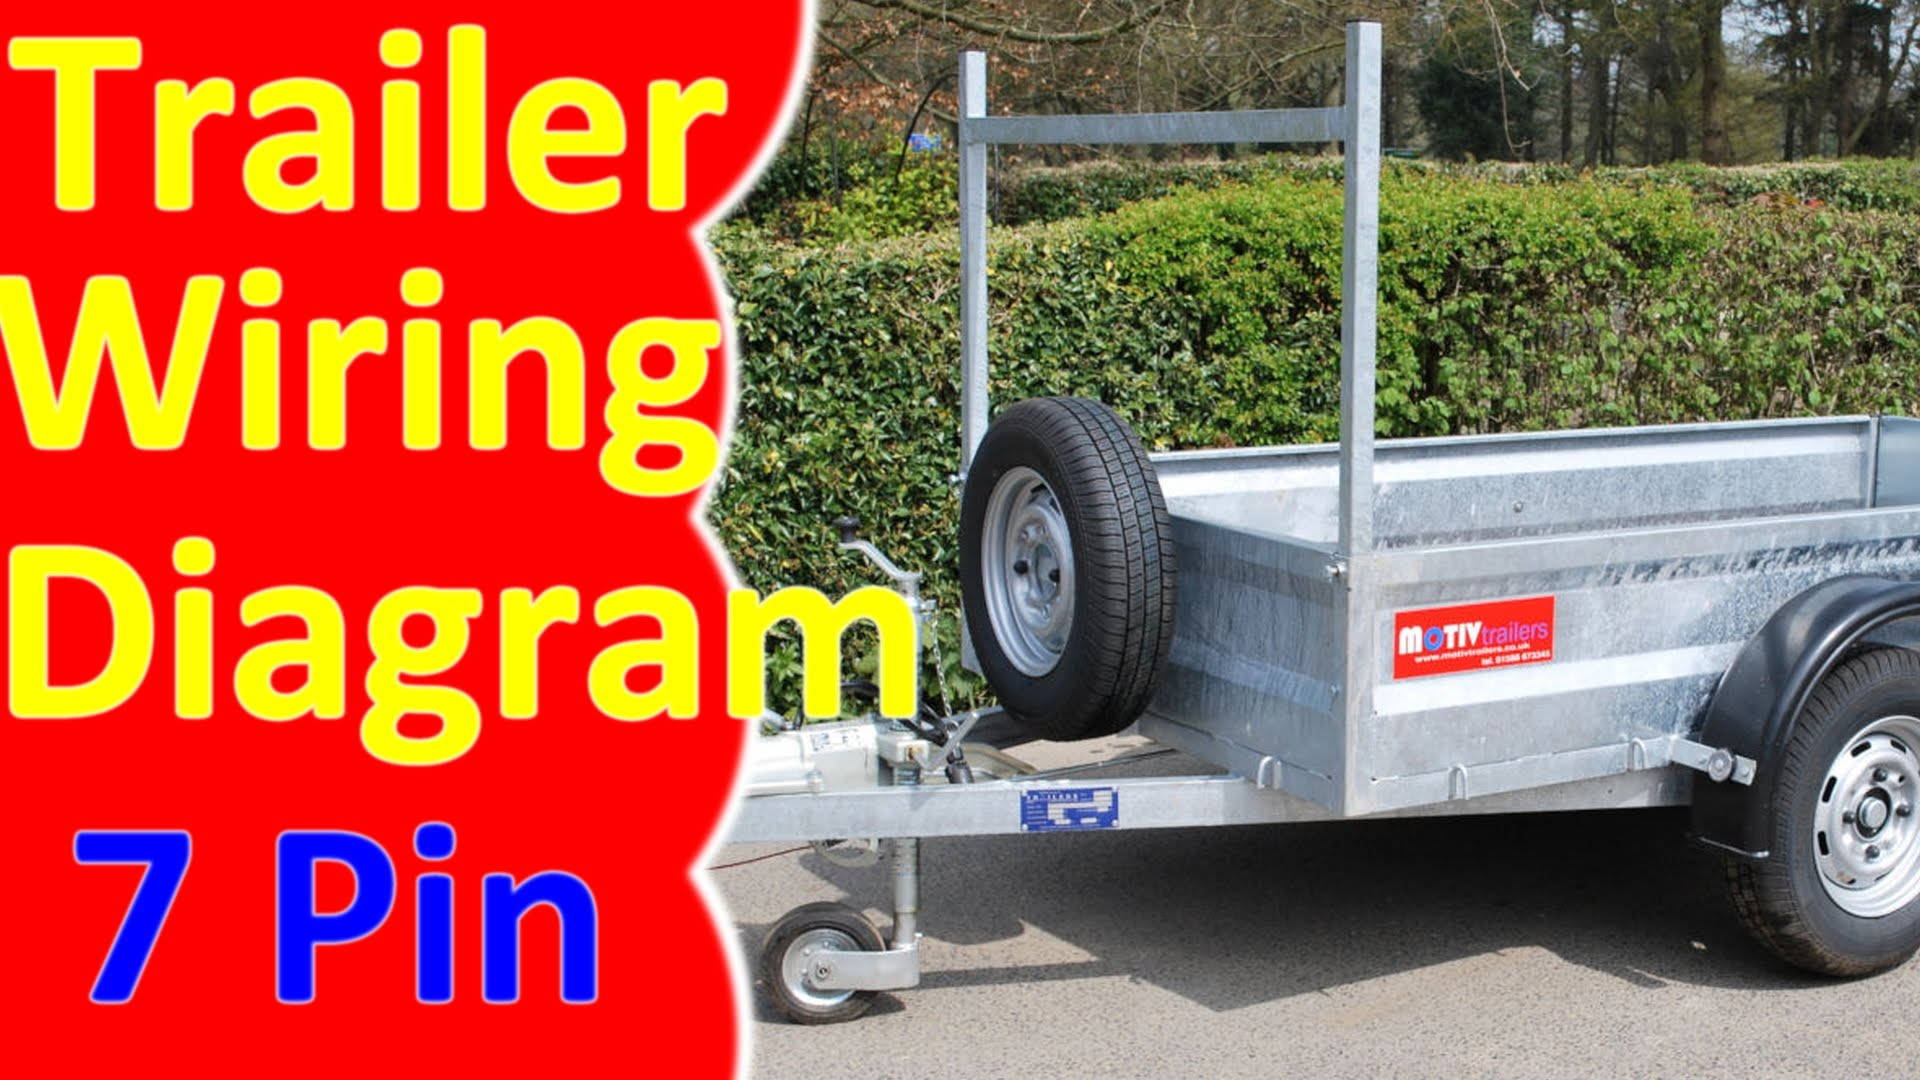 Wiring Diagram Trailer Lights 7 Pin South Africa Utility Way For - Wiring Diagram Trailer South Africa